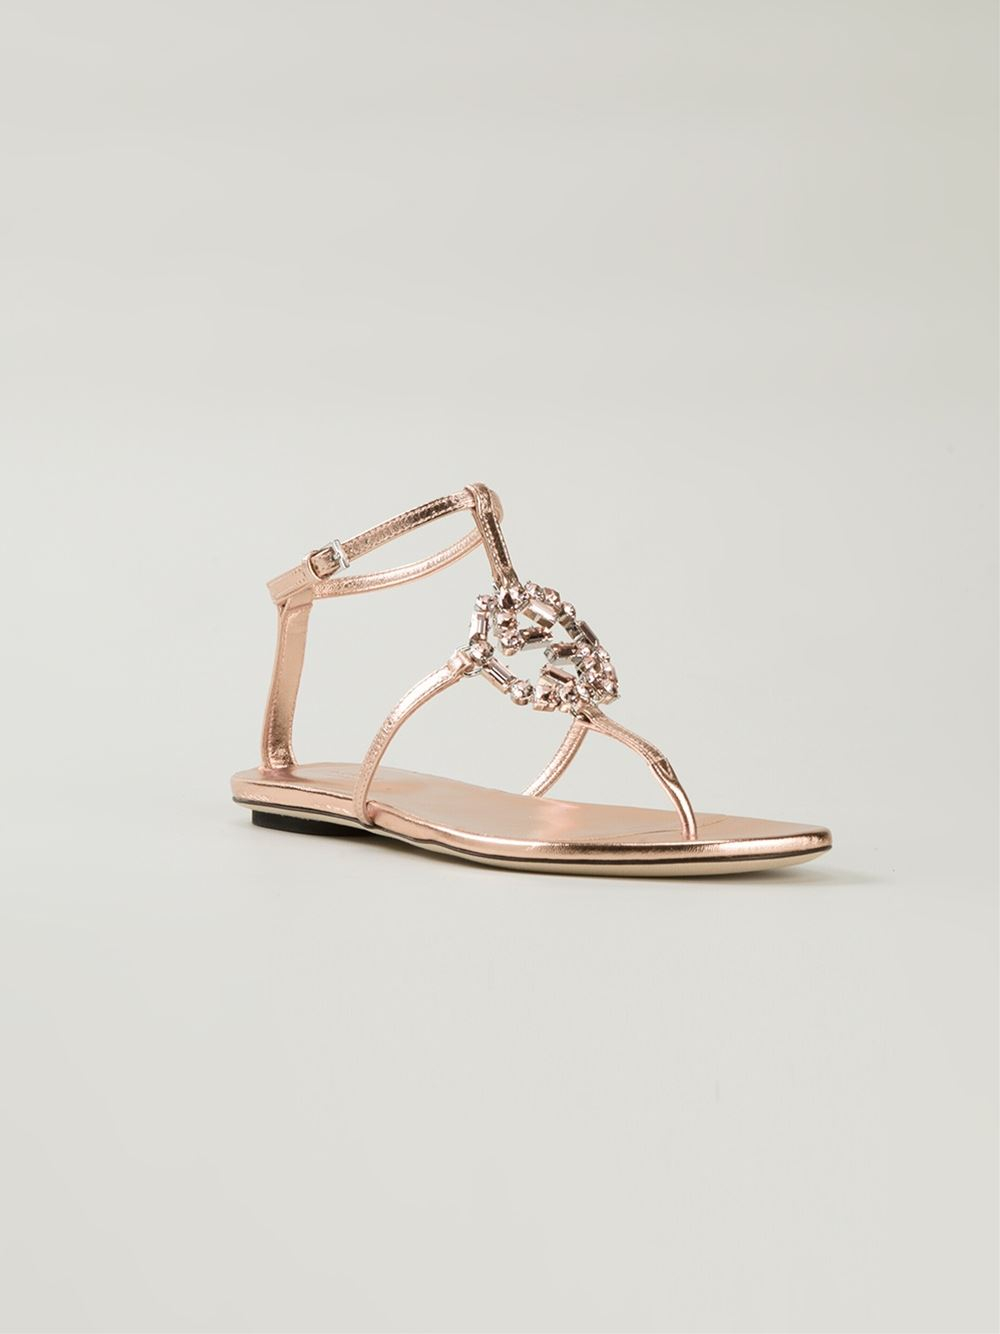 6e89463ccea Lyst - Gucci  gg  Flat Sandals in Pink